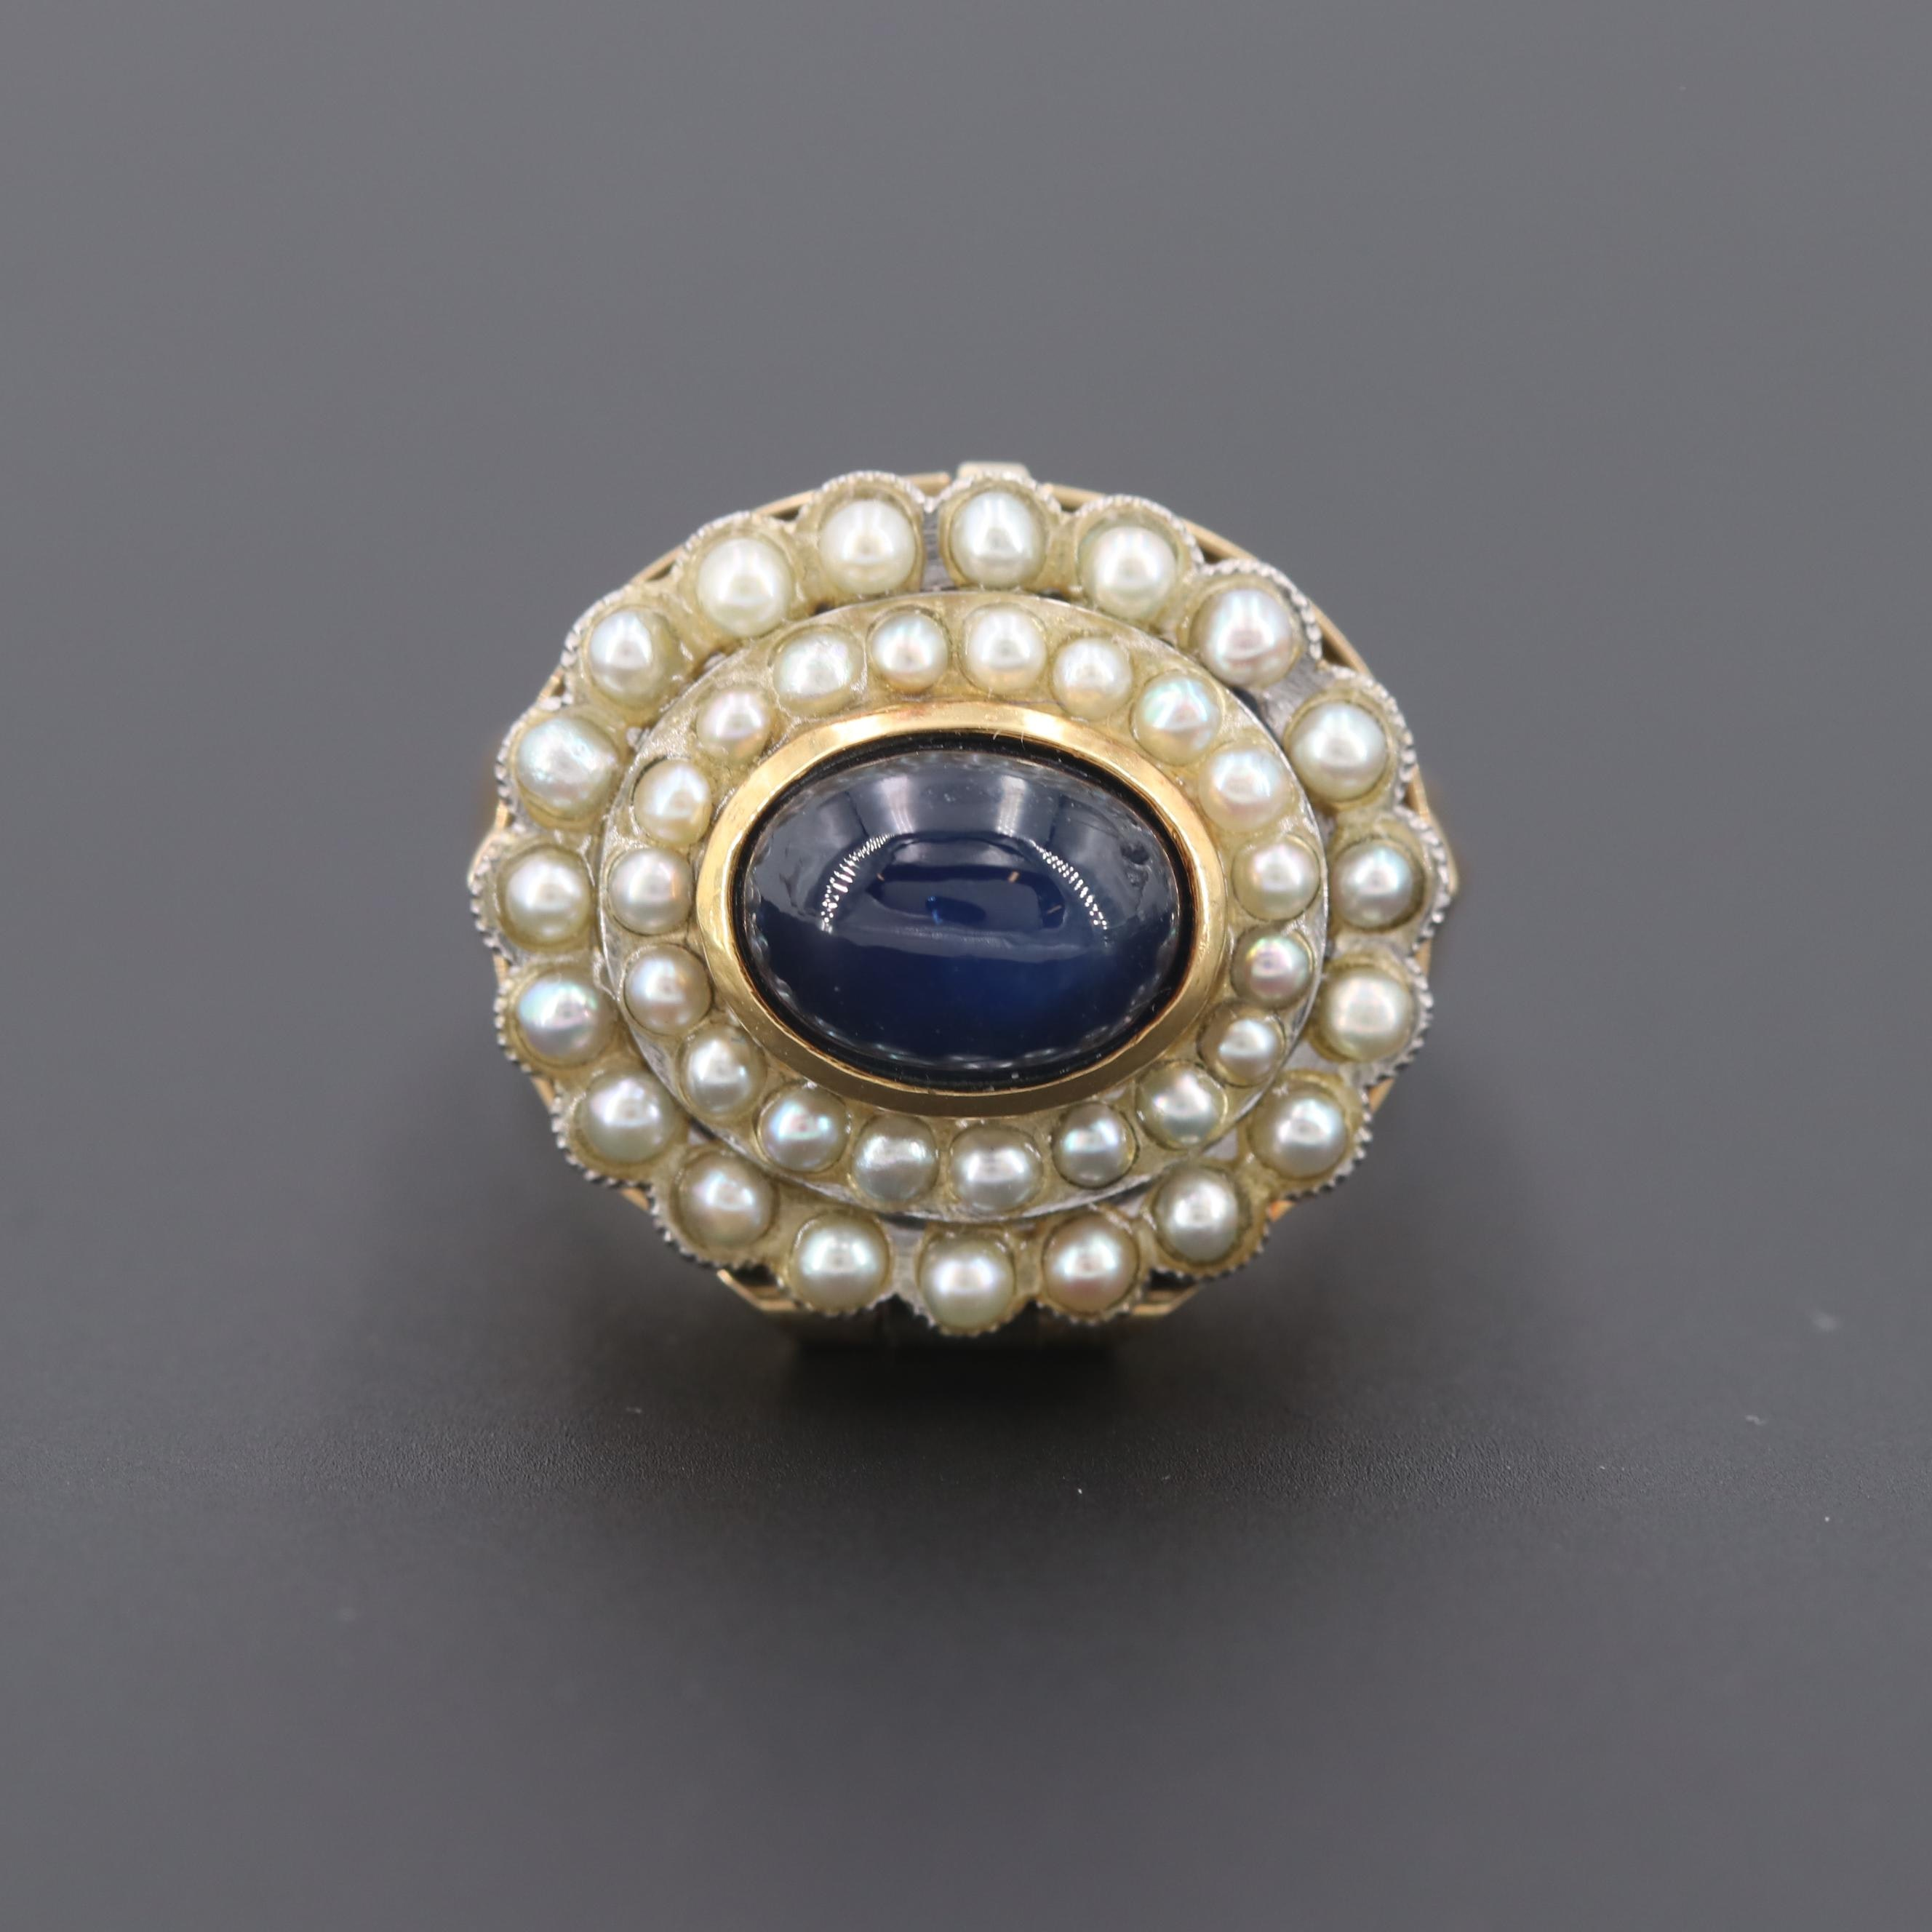 Vintage 18K Yellow Gold Star Sapphire and Cultured Pearl Poison Ring